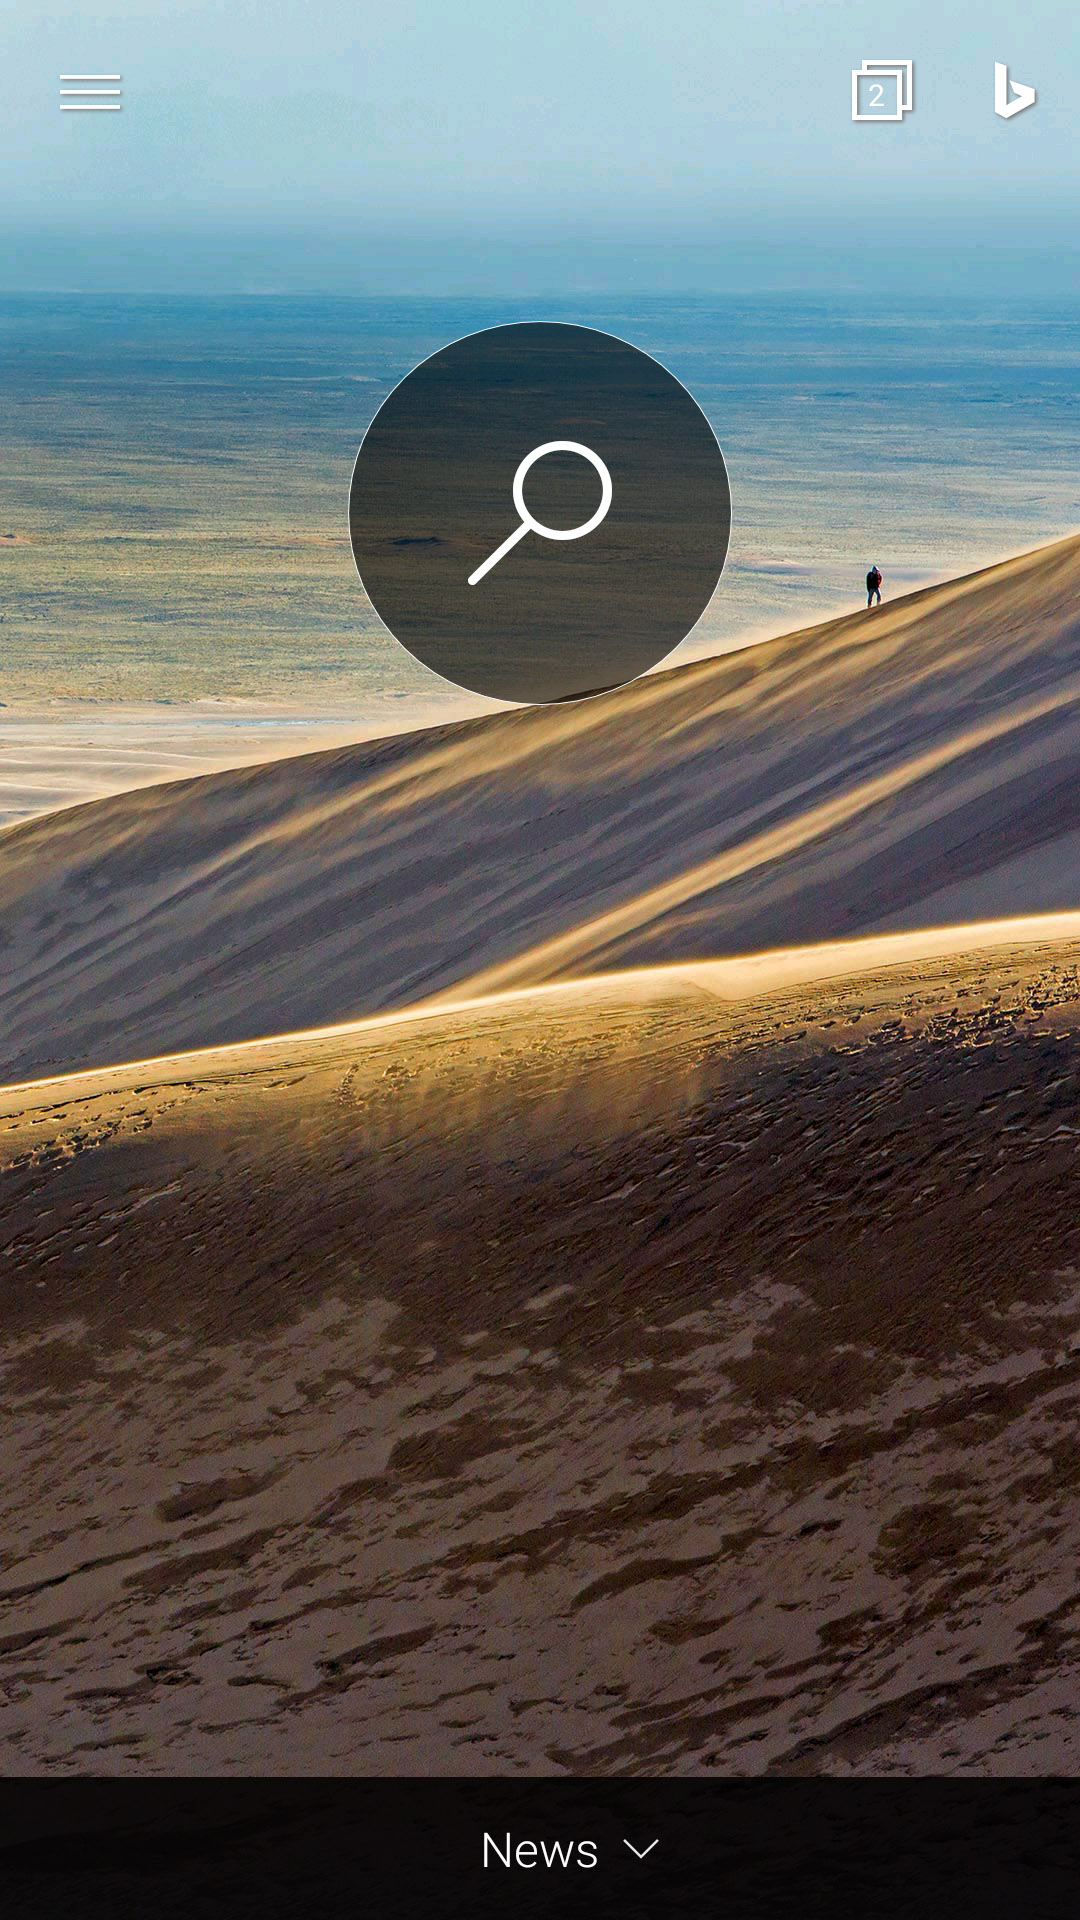 Https Www Bing Com Search Q Www Youtube Com: Microsoft Updates Bing Search For Android With Redesign